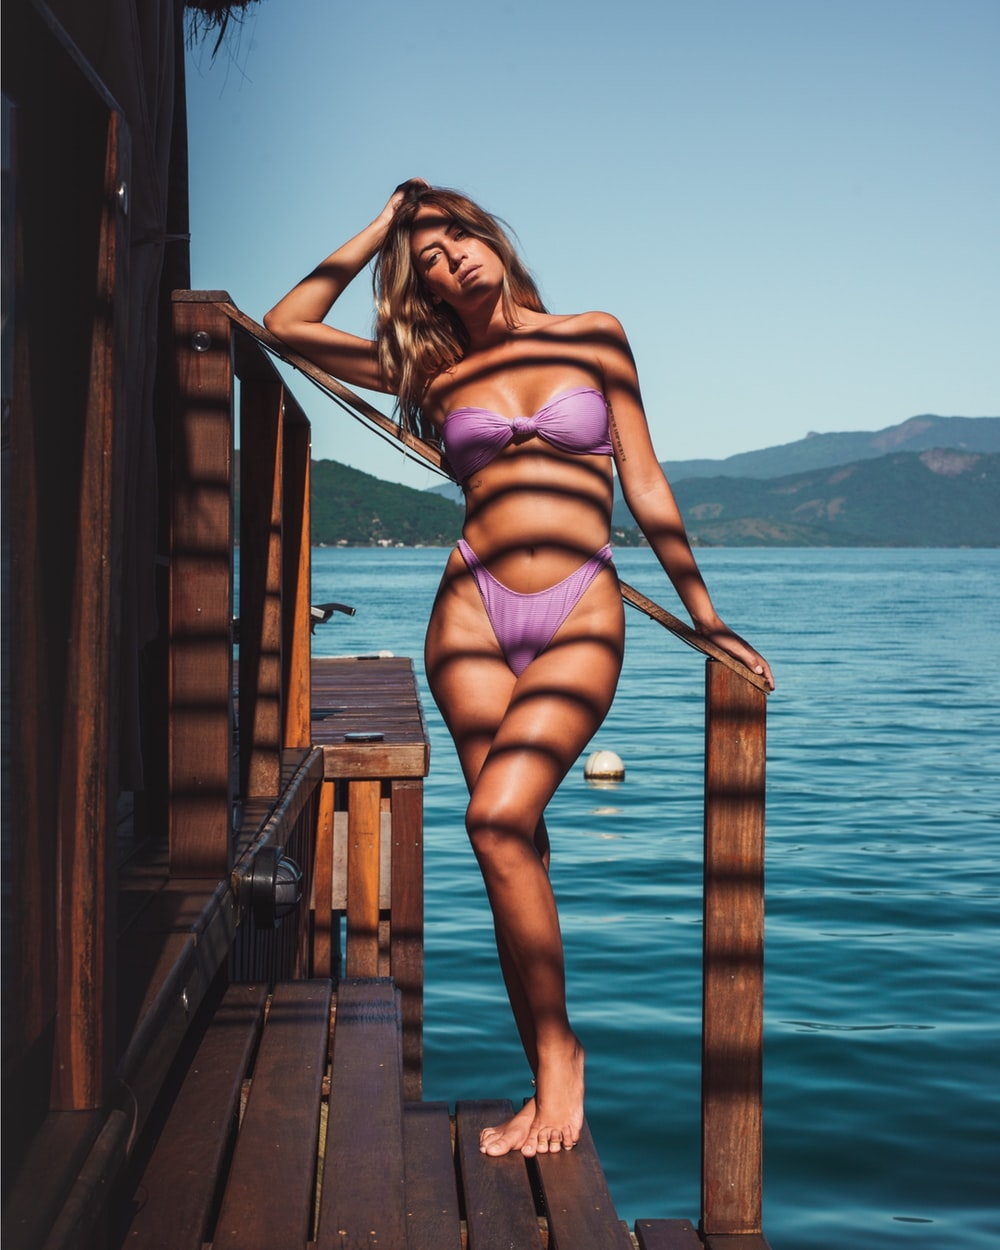 woman in pink bikini standing on wooden dock during daytime